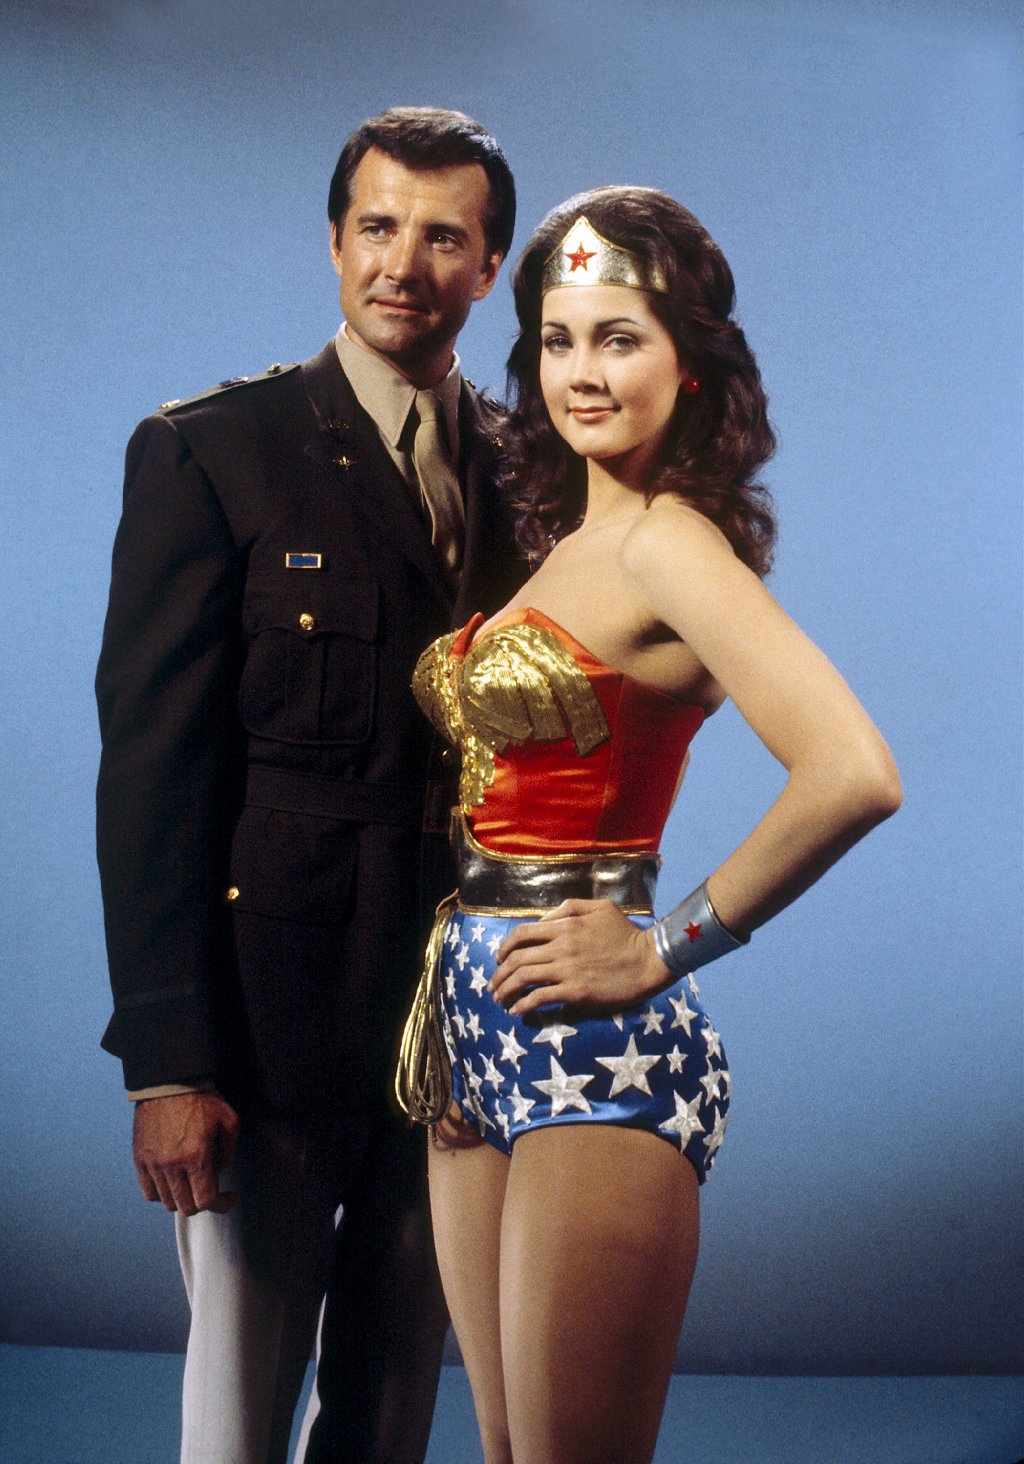 https://static.bedtimez.com/wp-content/uploads/2017/09/17074851/Lyle-Waggoner-and-Lynda-Carter-did-not-get-along..jpg